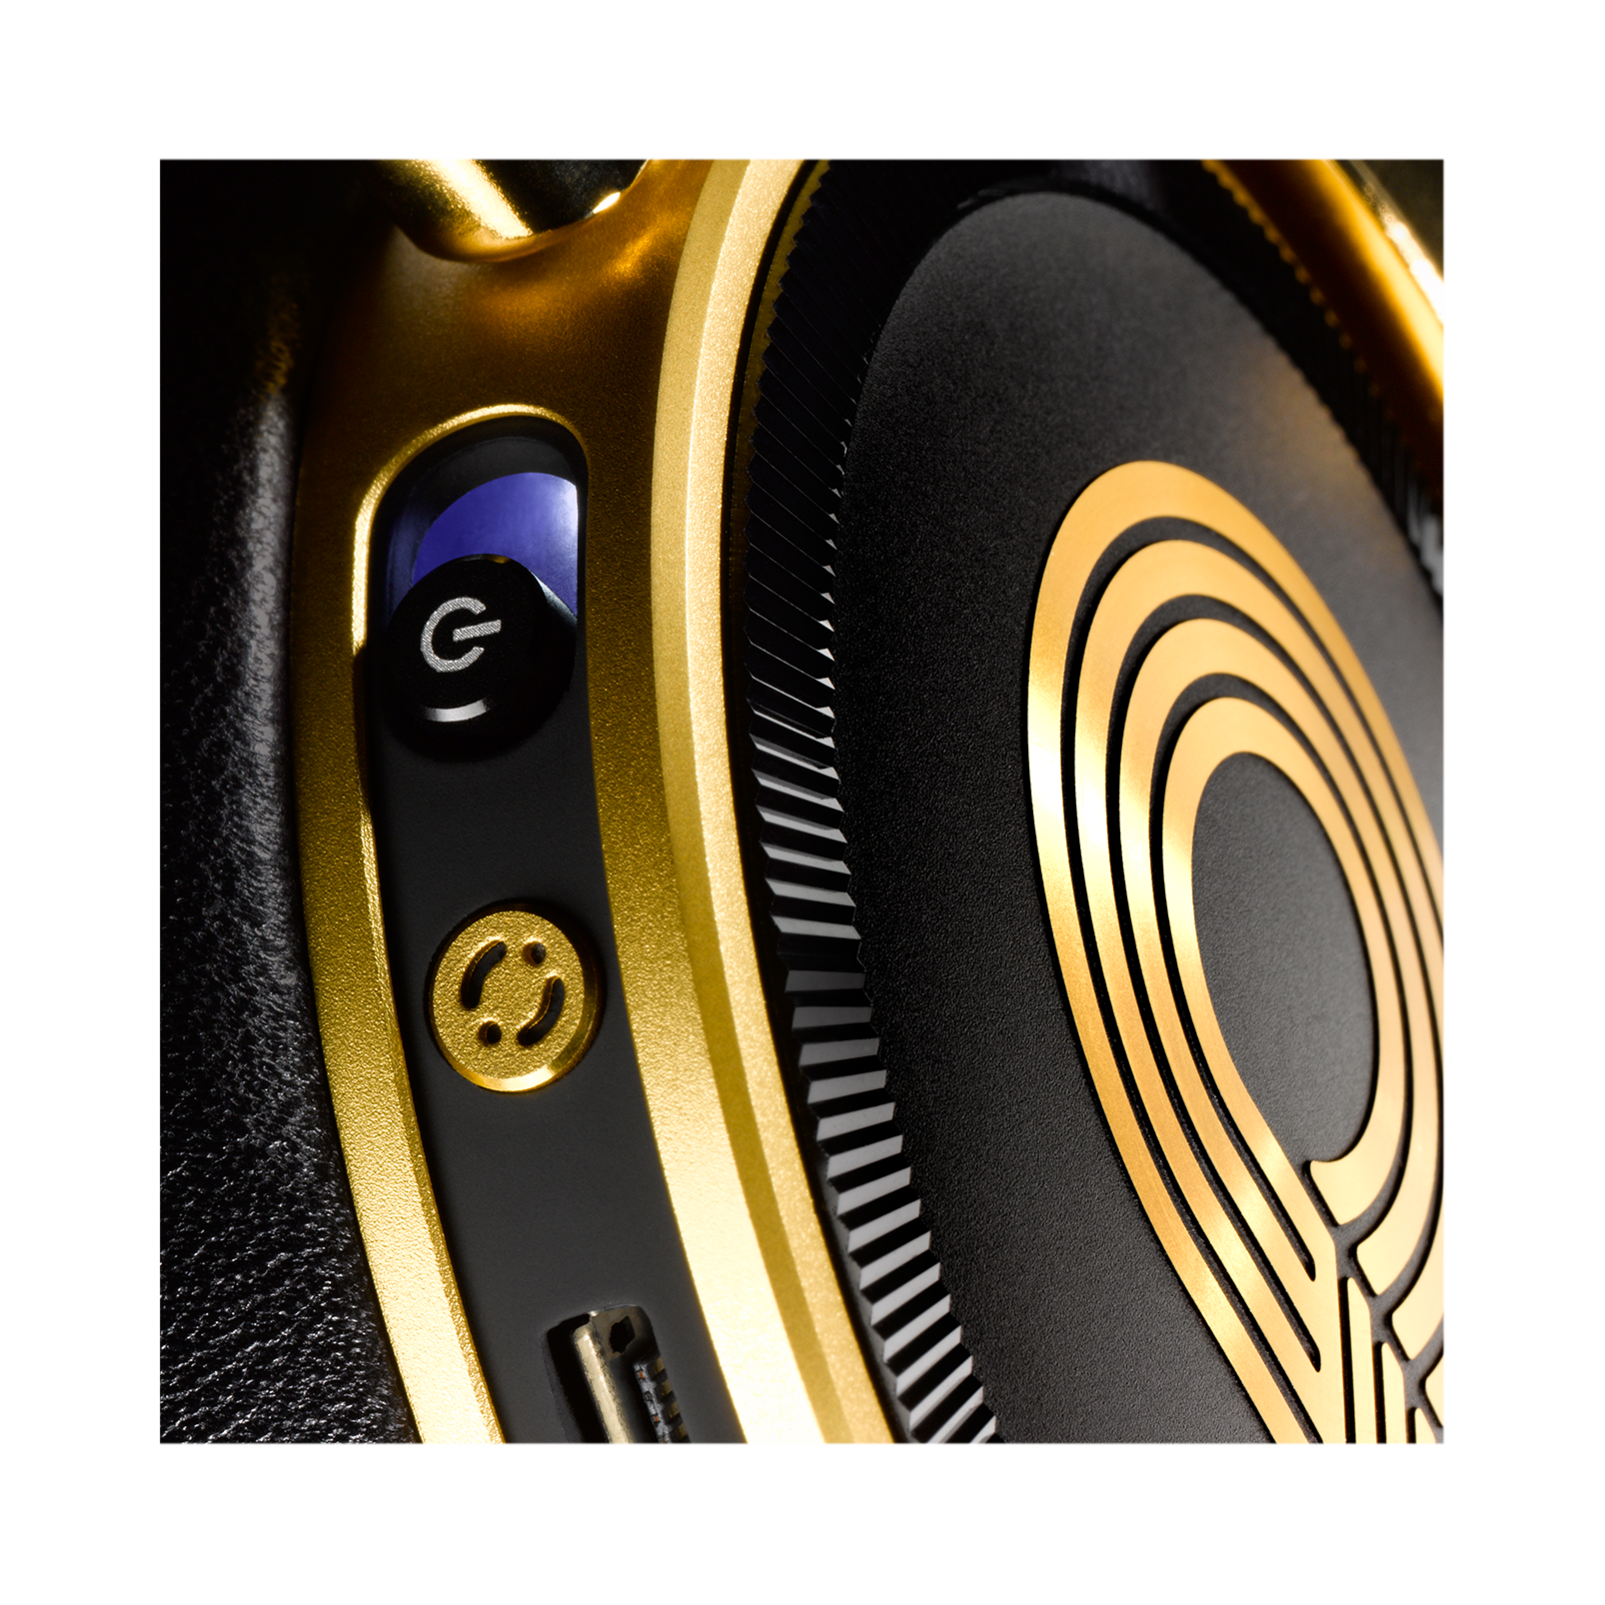 N90Q - Gold - Reference class auto-calibrating noise-cancelling headphones - Detailshot 12